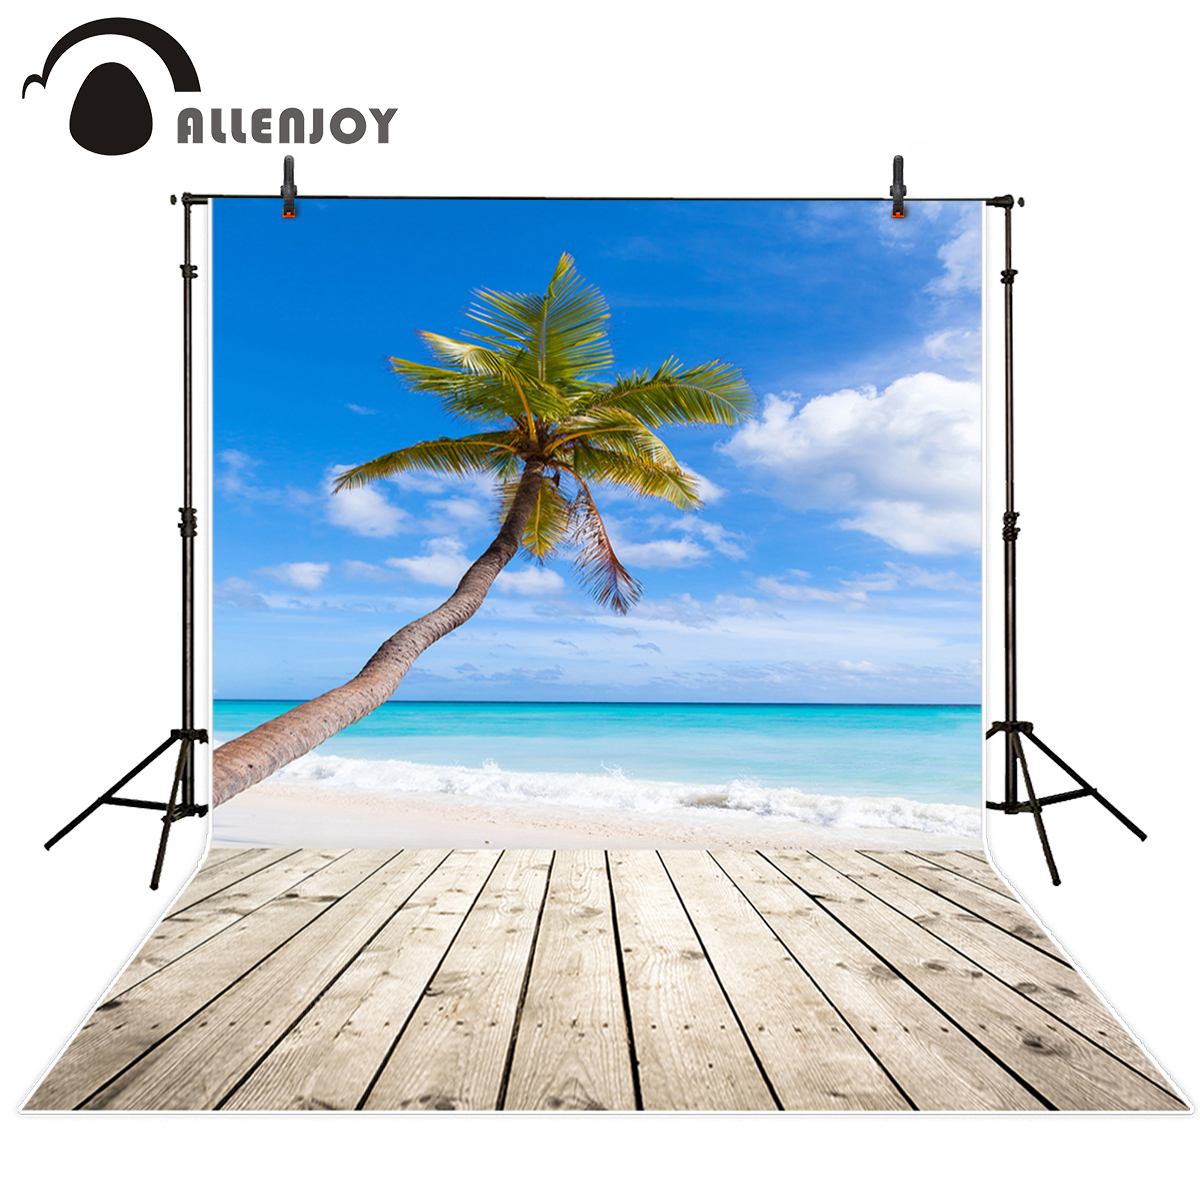 Allenjoy Beach Blue Sky vinyl backdrops for photography Coconut Tree summer background for photo studio props photographer